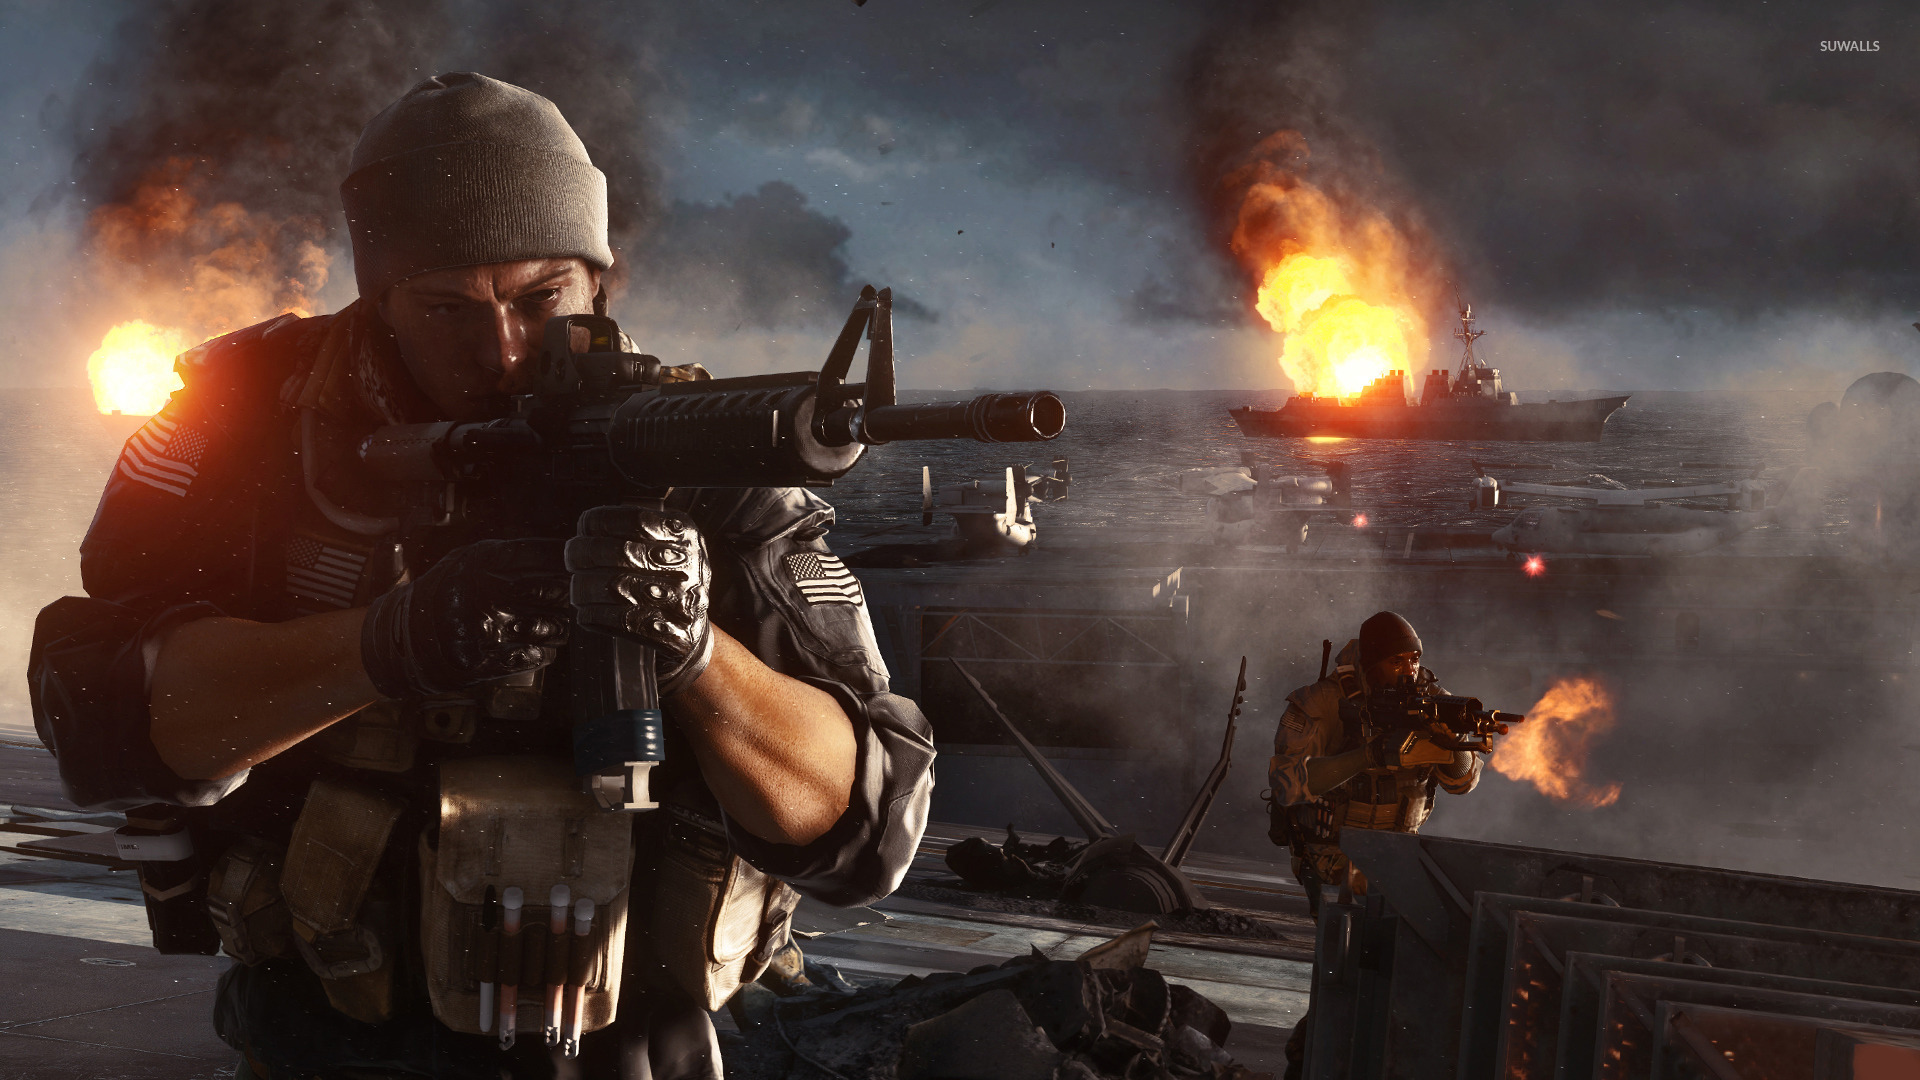 Battlefield 4 wallpaper   Game wallpapers   21388 1280x800